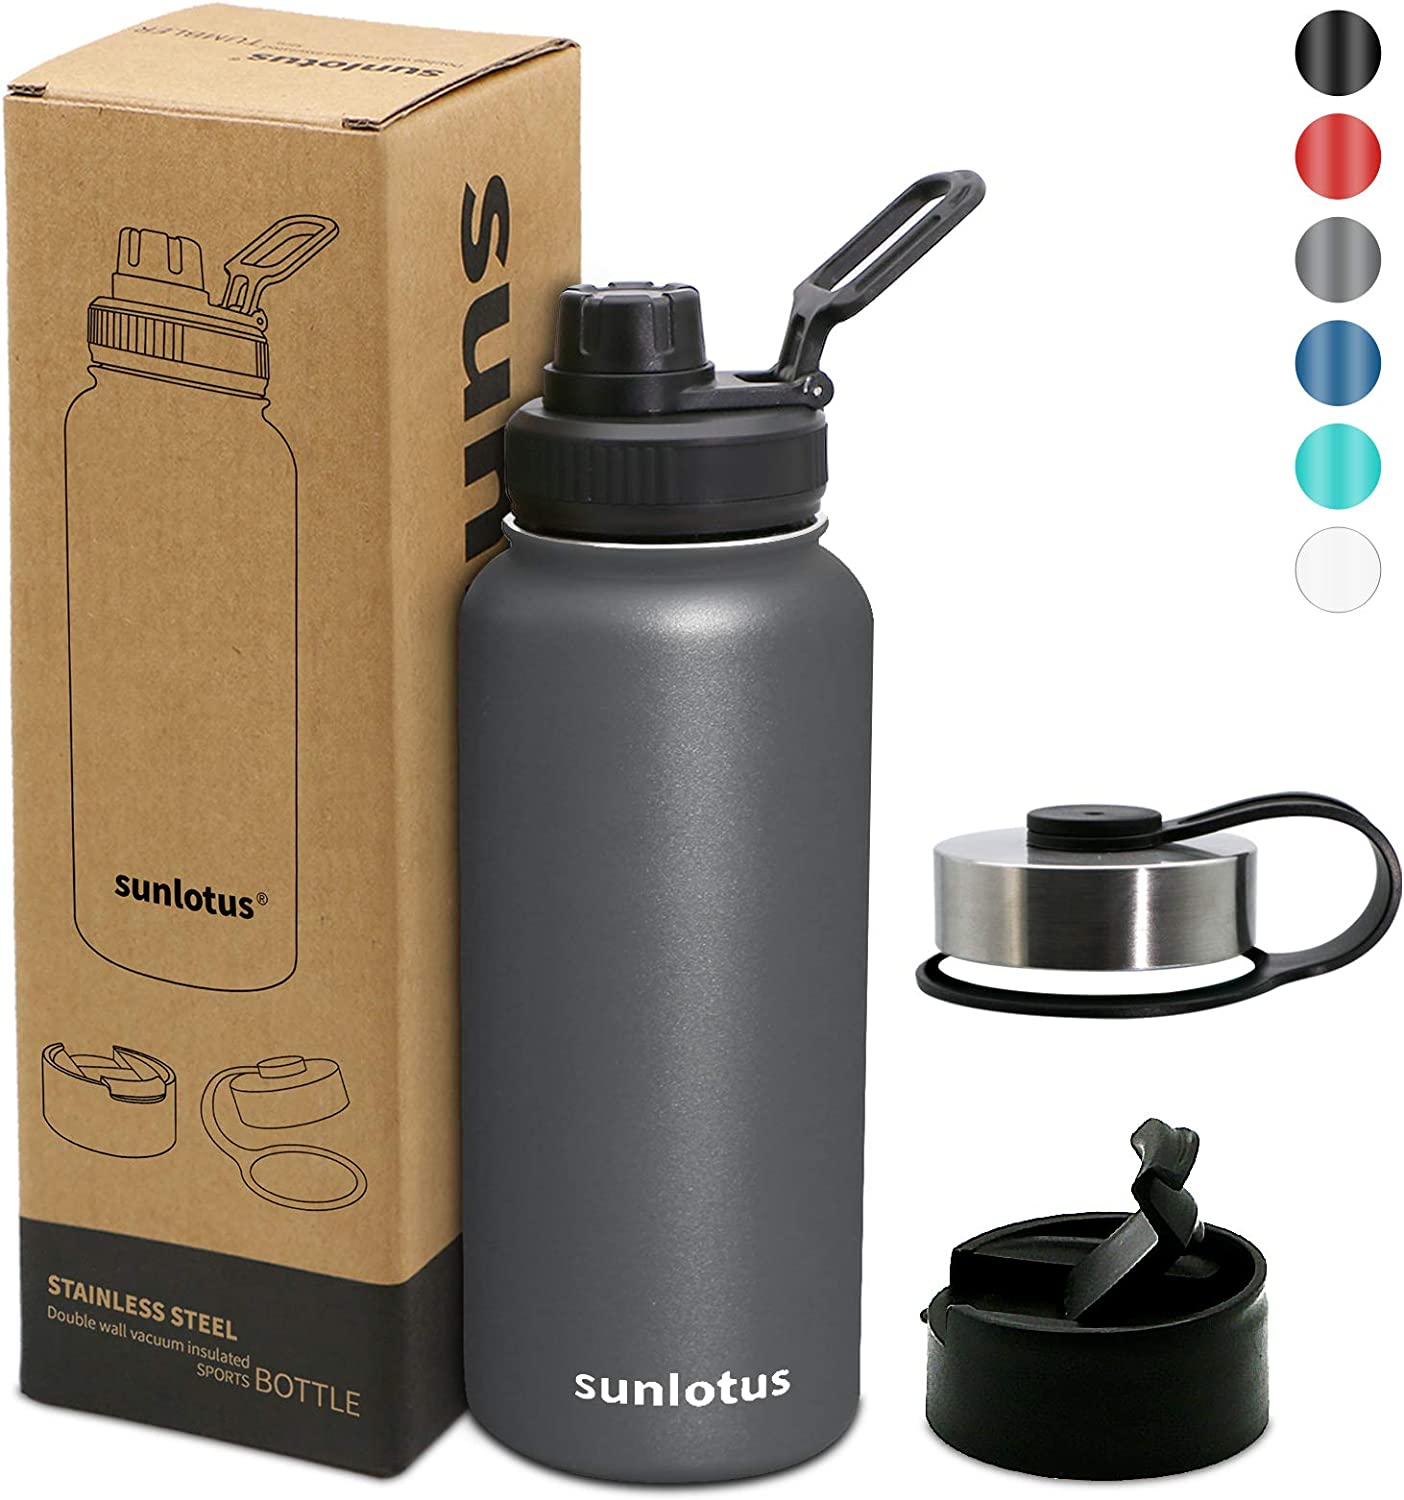 sunlotus Fathers Day Stainless Steel Sports Water Bottle, Modern Wall Vacuum Insulated Wide Mouth with Straw Lid, Spout Lid 32 oz, 40 oz Sweat Free Thermos Mug